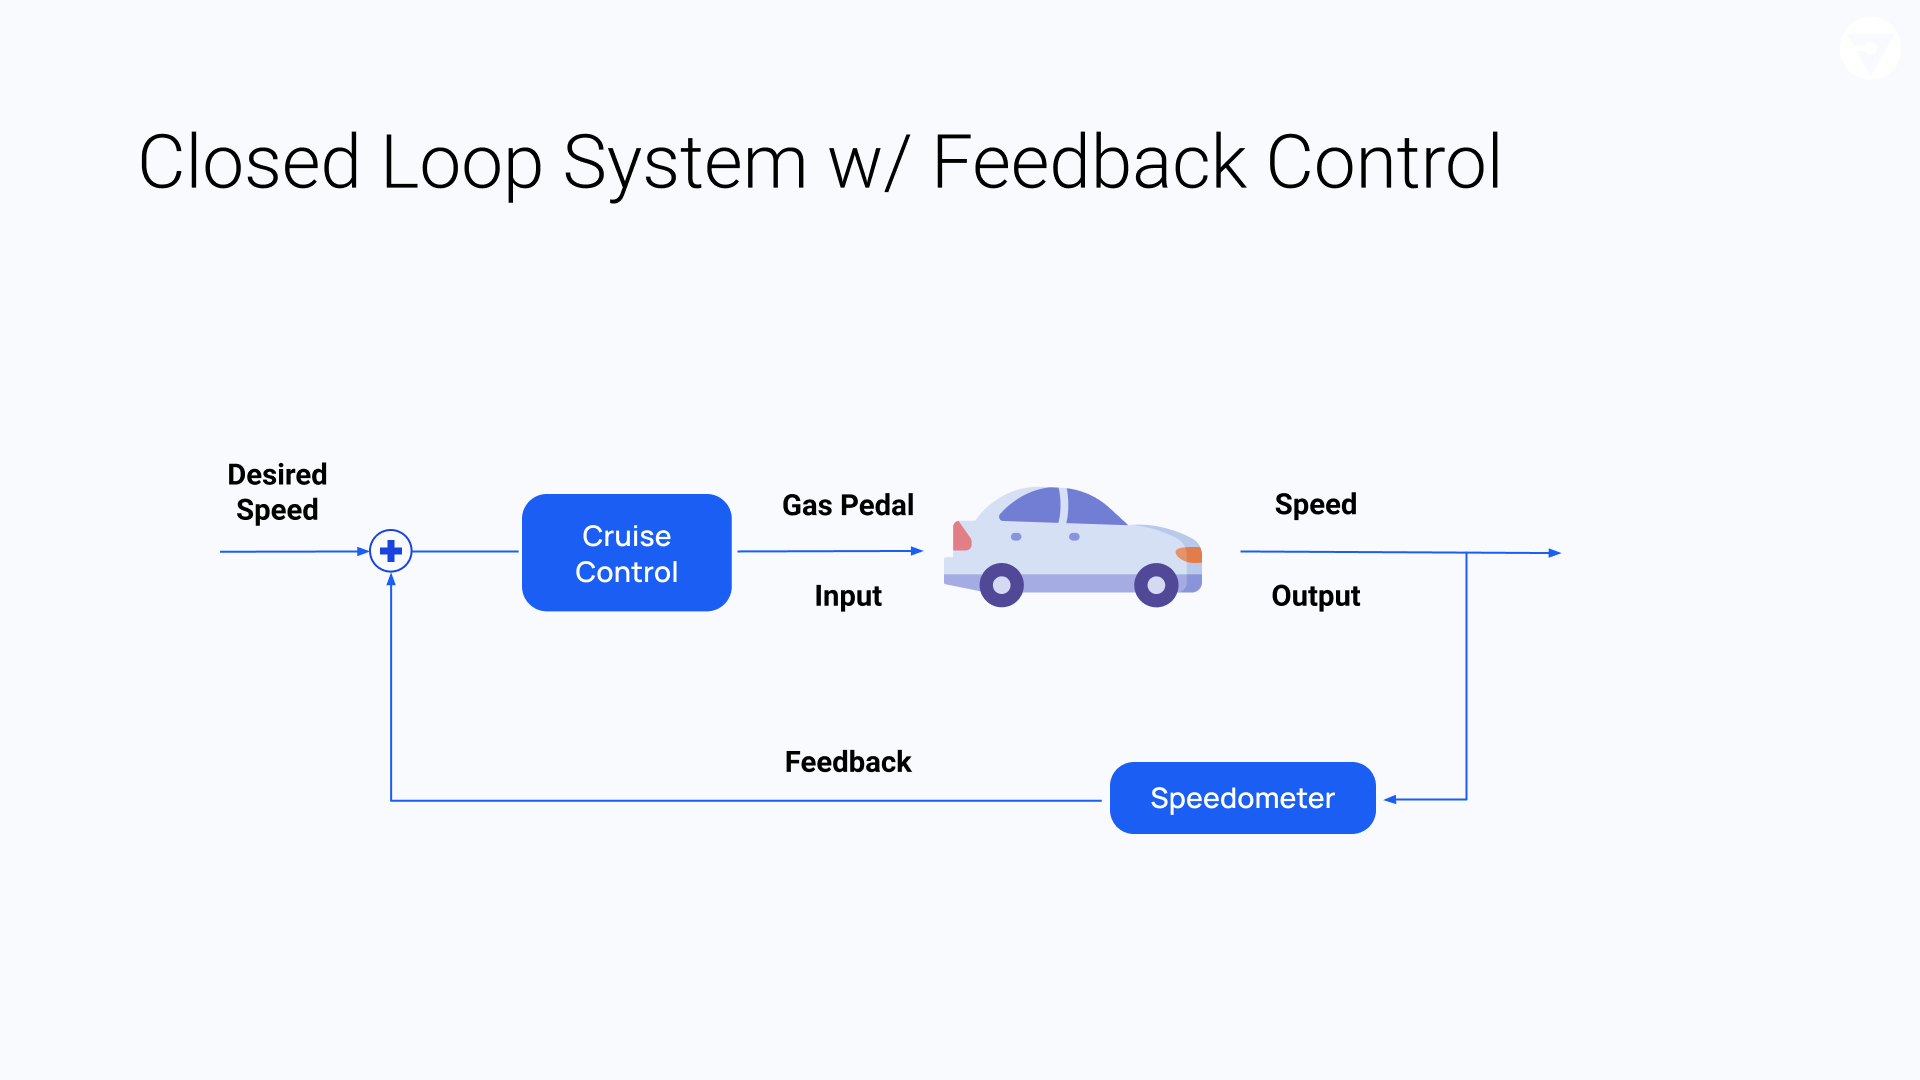 Closed-loop systems have a feedback control, like a cruise control in your car that receives feedback from the speedometer.